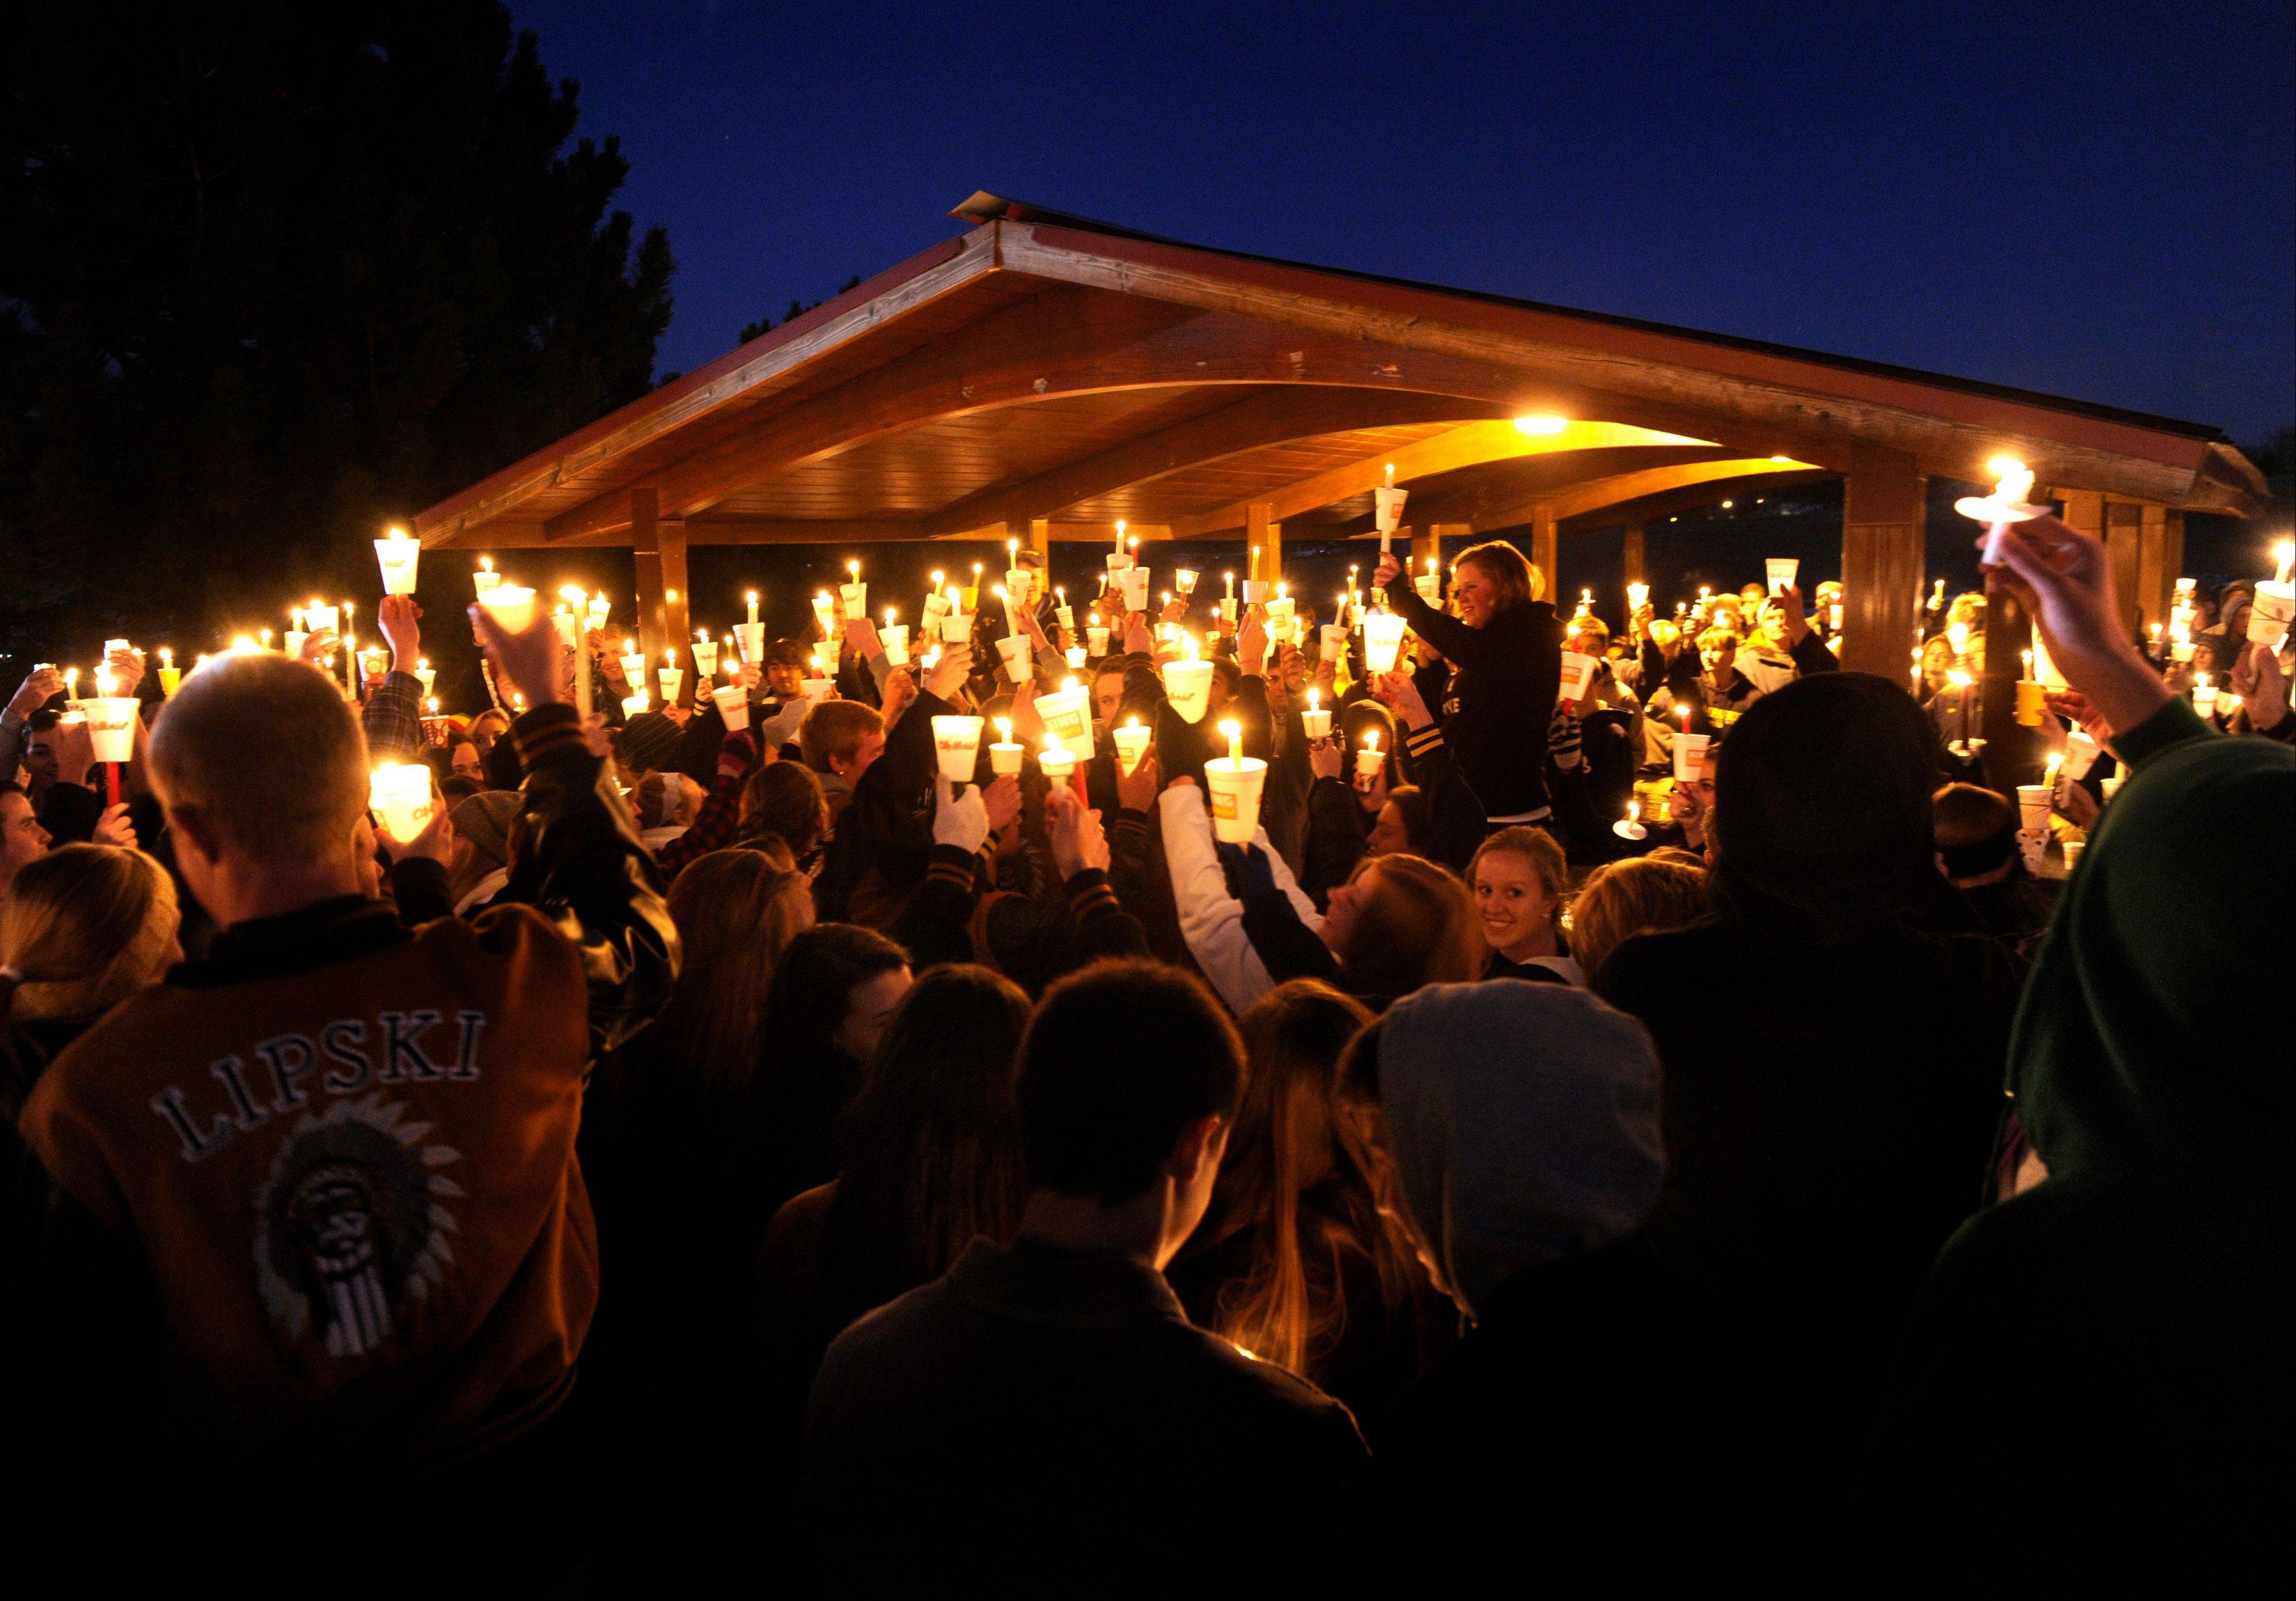 Hundreds of Arapahoe High School students gathered for a candlelight vigil Saturday night to share their prayers for Claire Davis who was shot inside the school Friday. The vigil was held at Arapaho Park in Centennial, not far from the school.